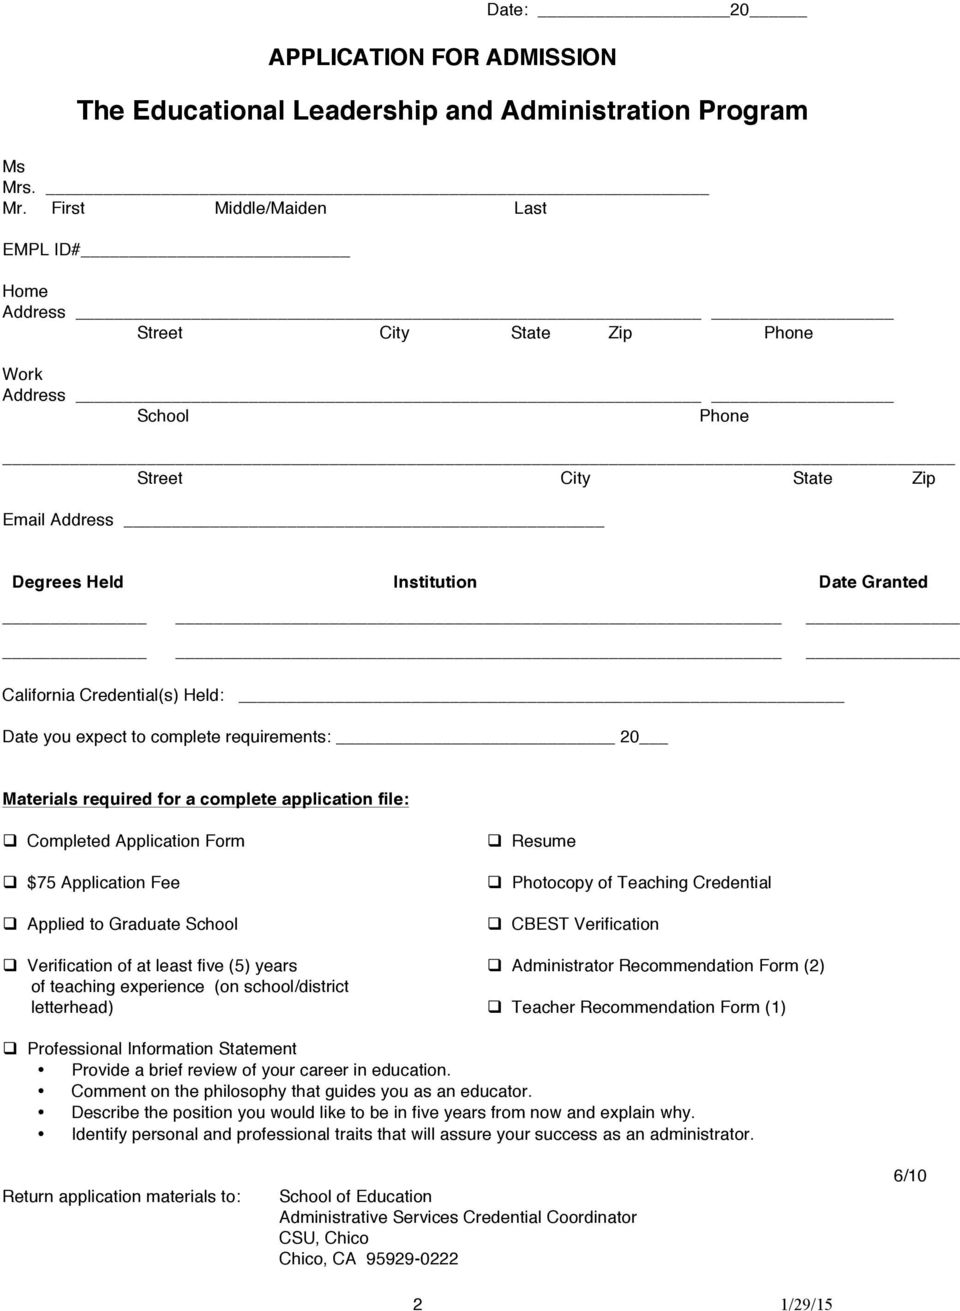 Credential(s) Held: Date you expect to complete requirements: 20 Materials required for a complete application file: Completed Application Form $75 Application Fee Applied to Graduate School Resume